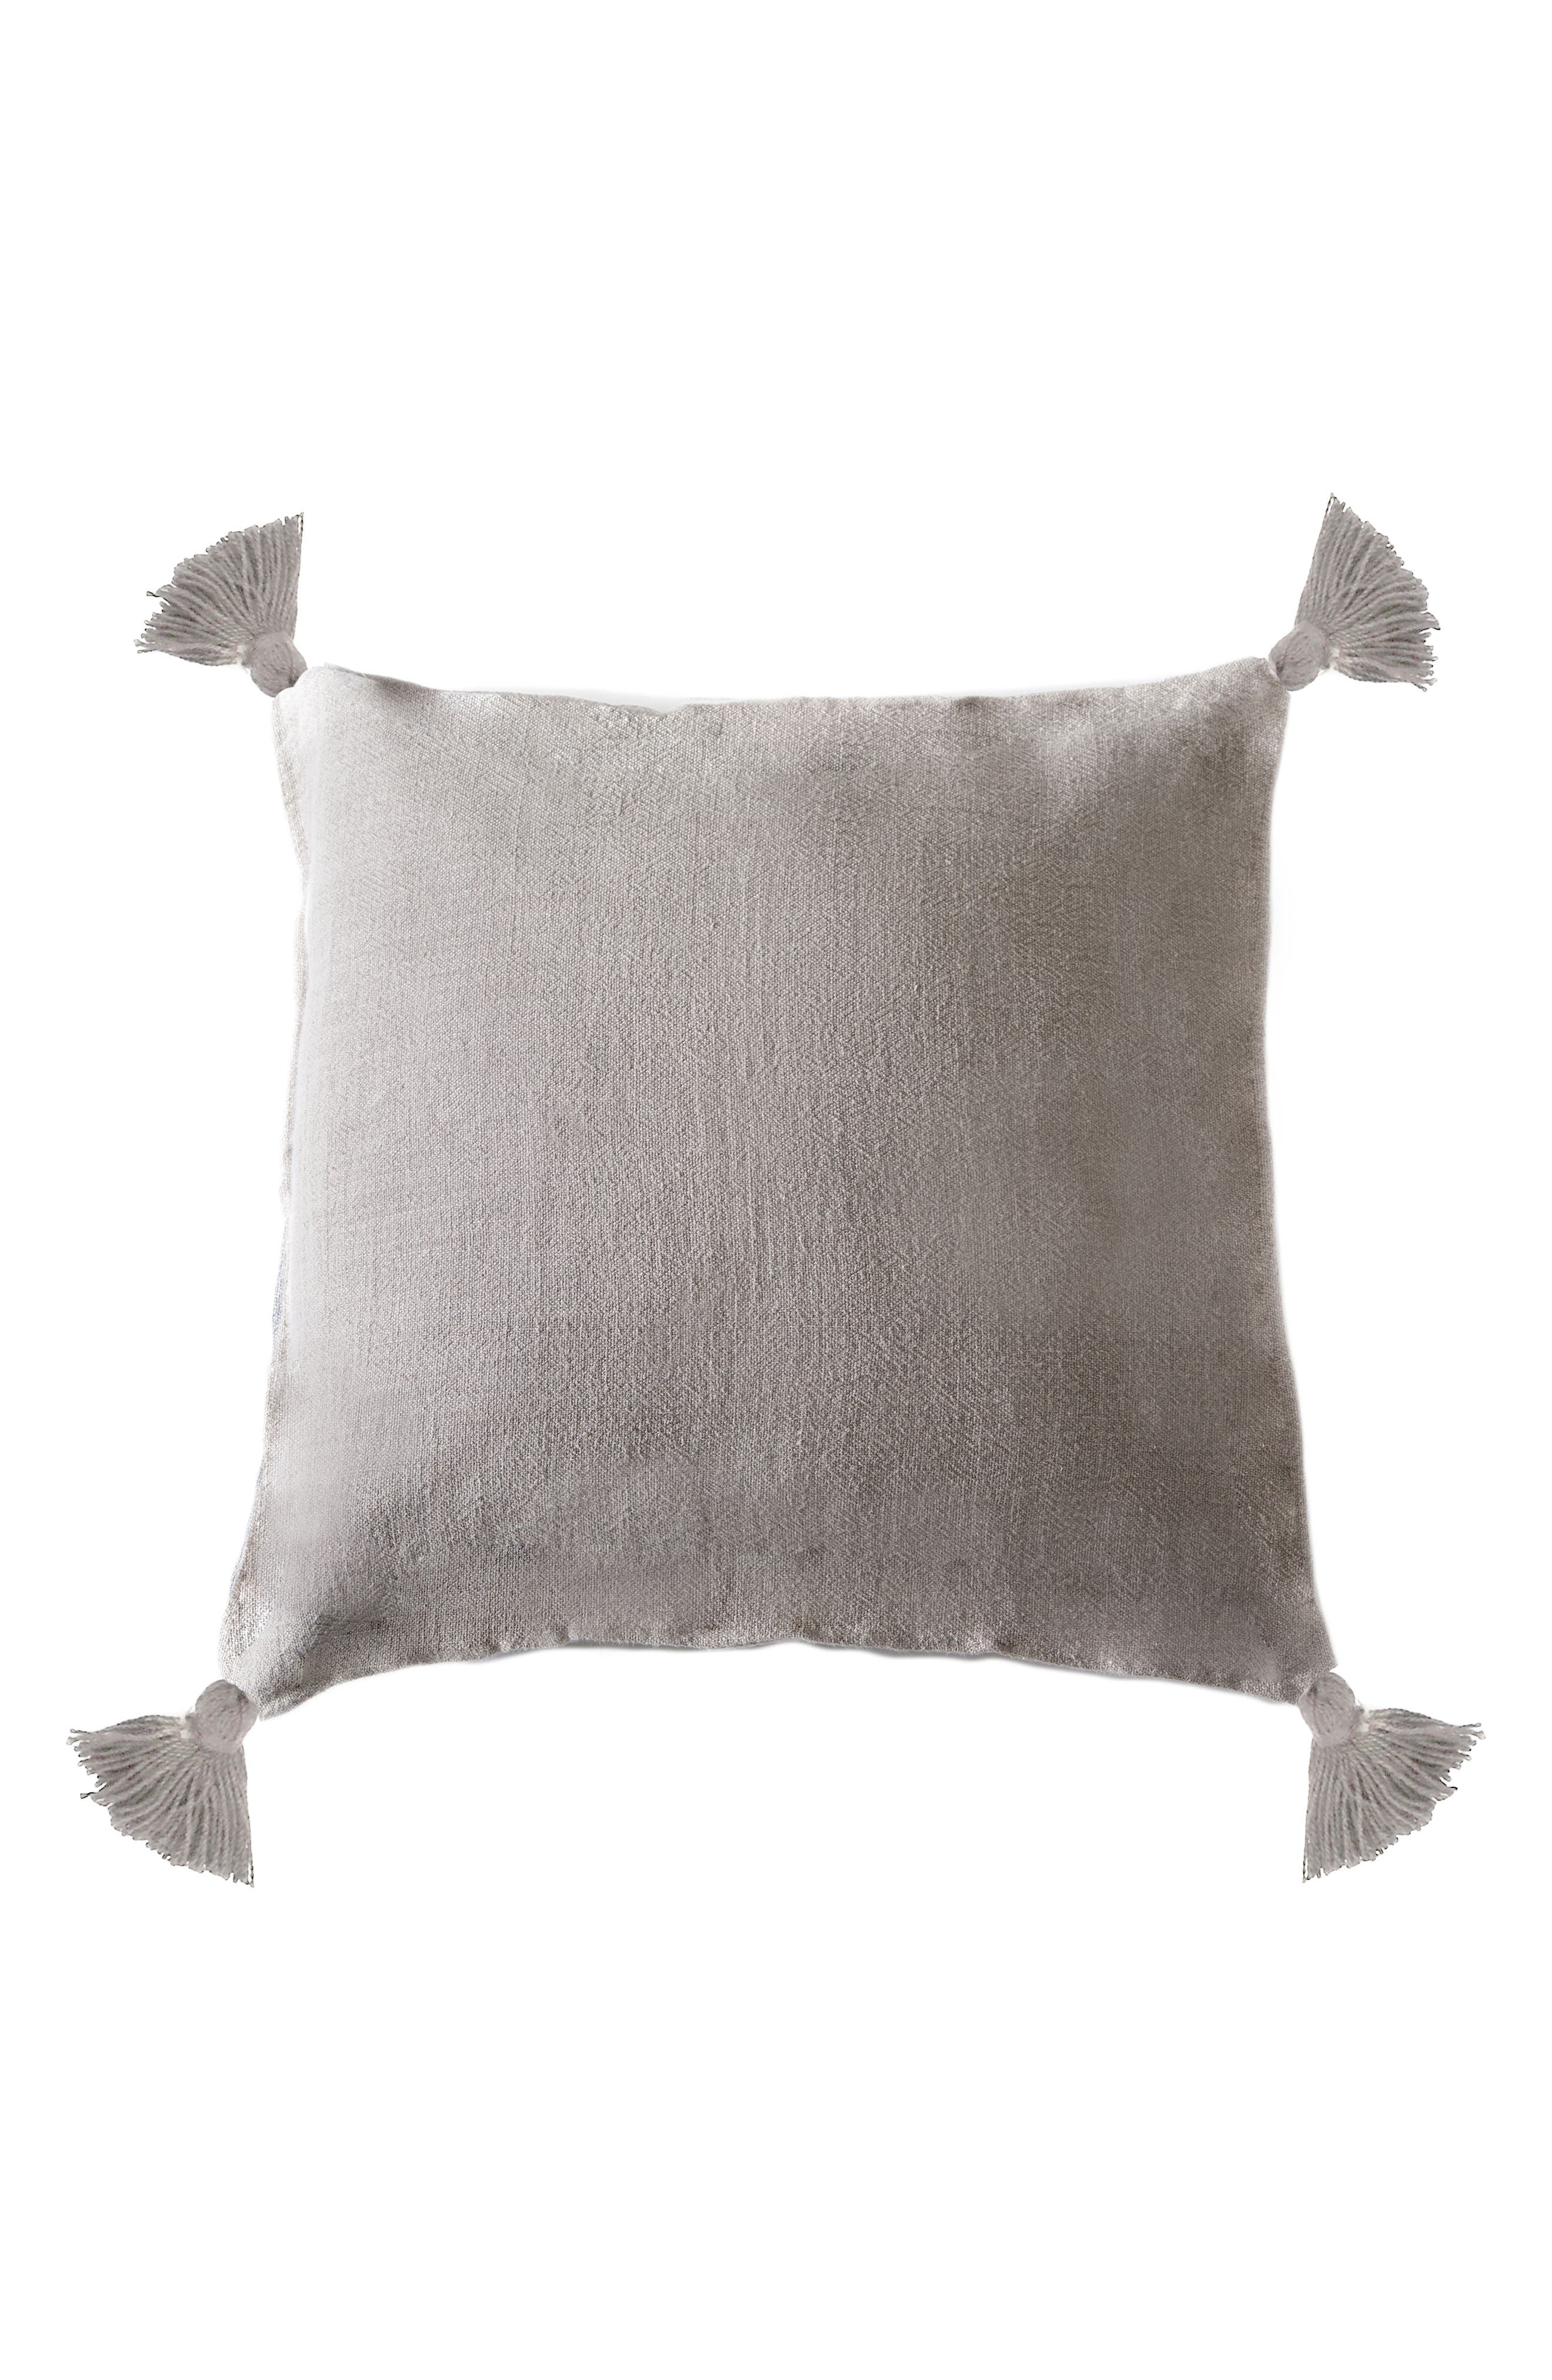 Pom Pom at Home Montauk Tassel Accent Pillow